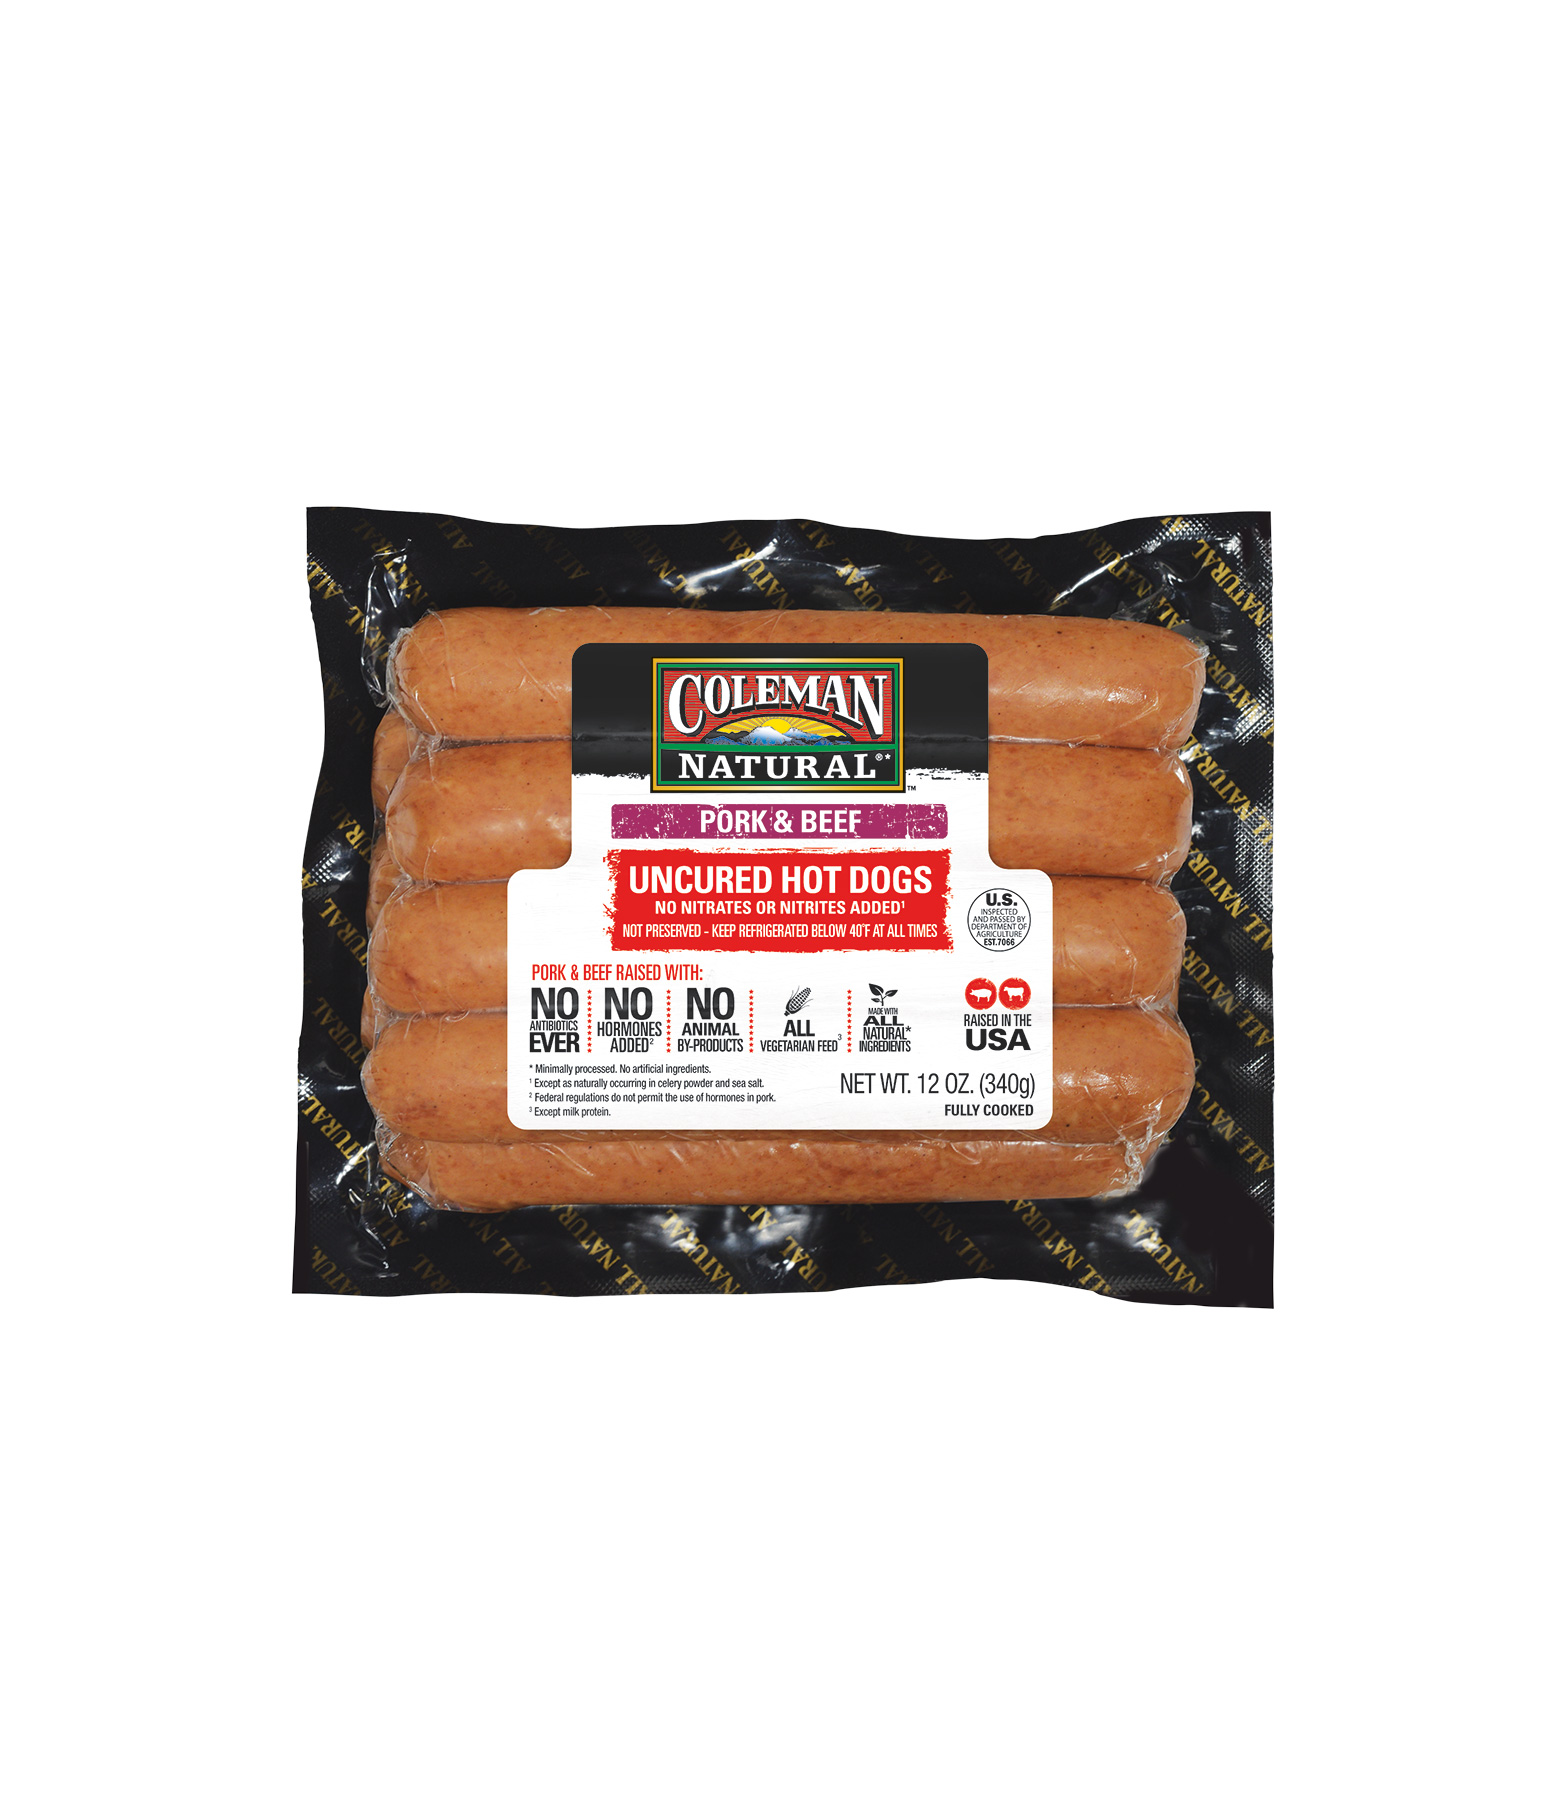 Coleman Natural Pork & Beef Uncured Hot Dogs (0718RTF)